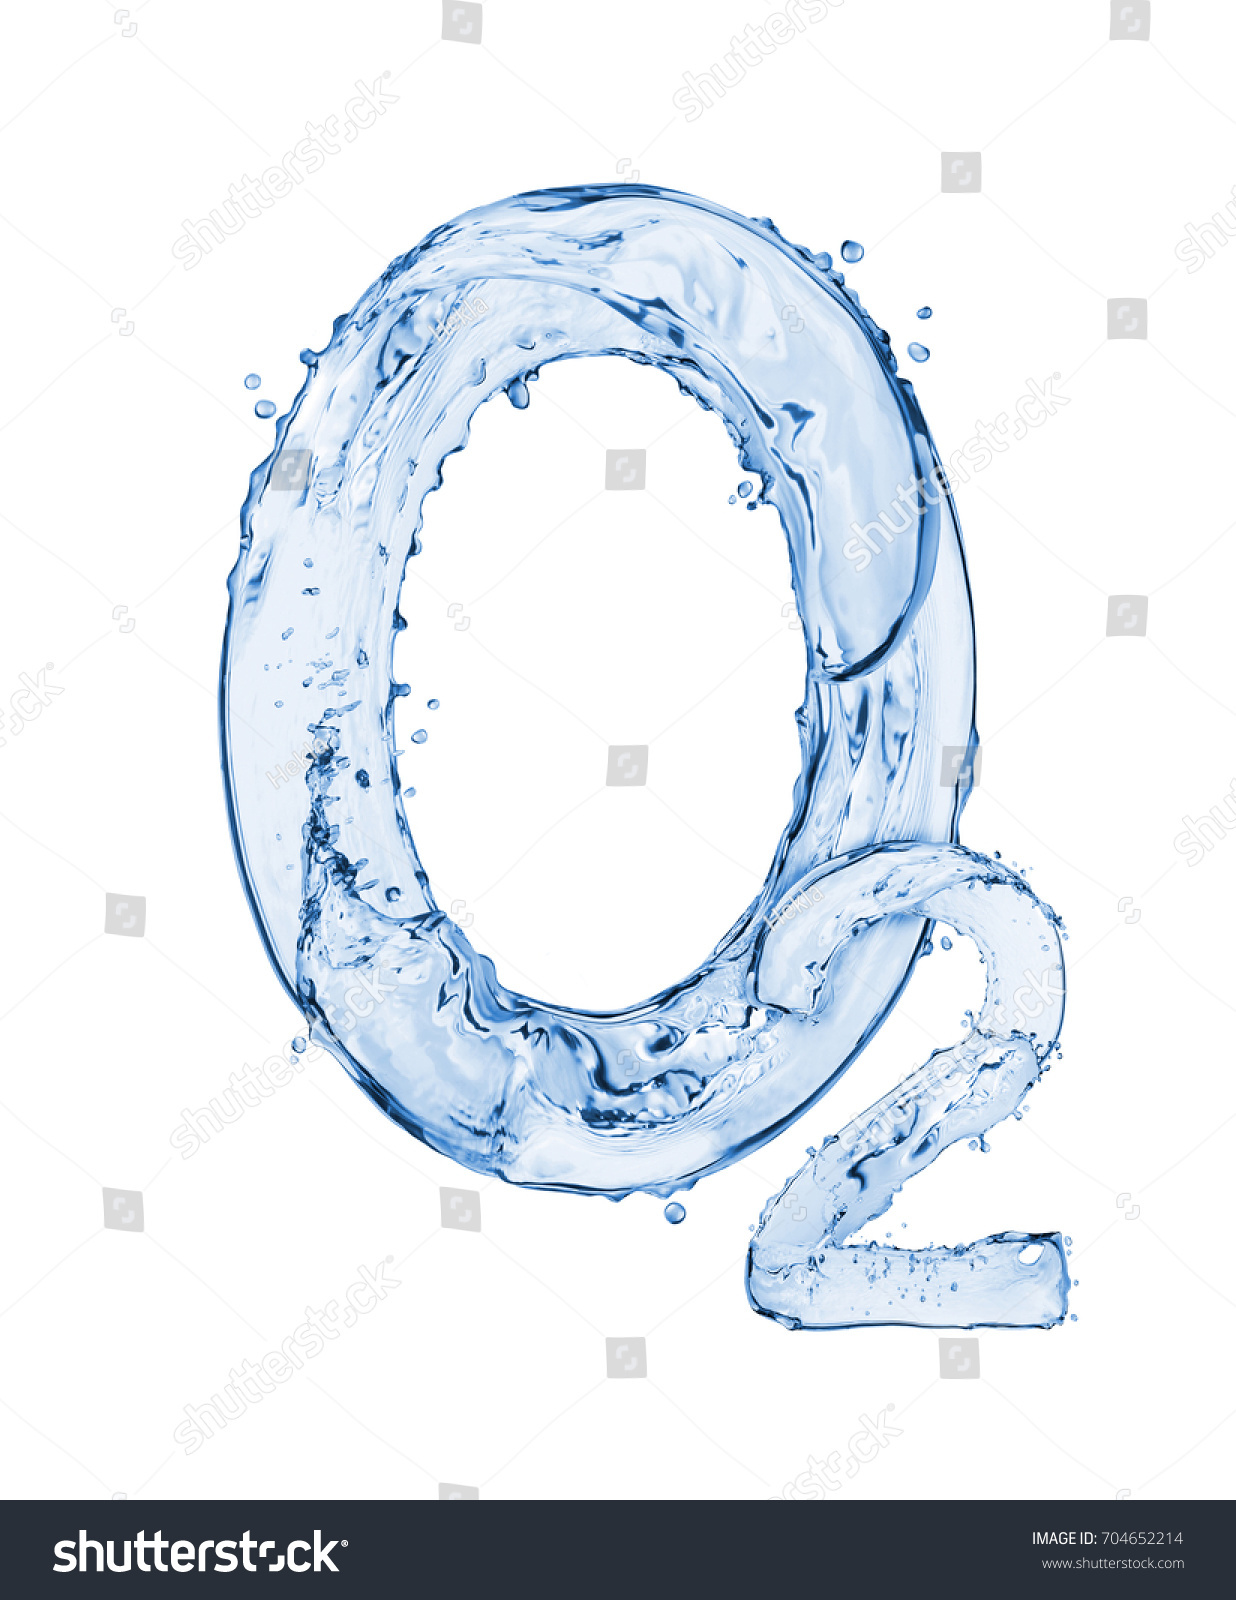 Chemical formula oxygen made water splashes stock photo 704652214 chemical formula of oxygen made of water splashes isolated on white background buycottarizona Image collections